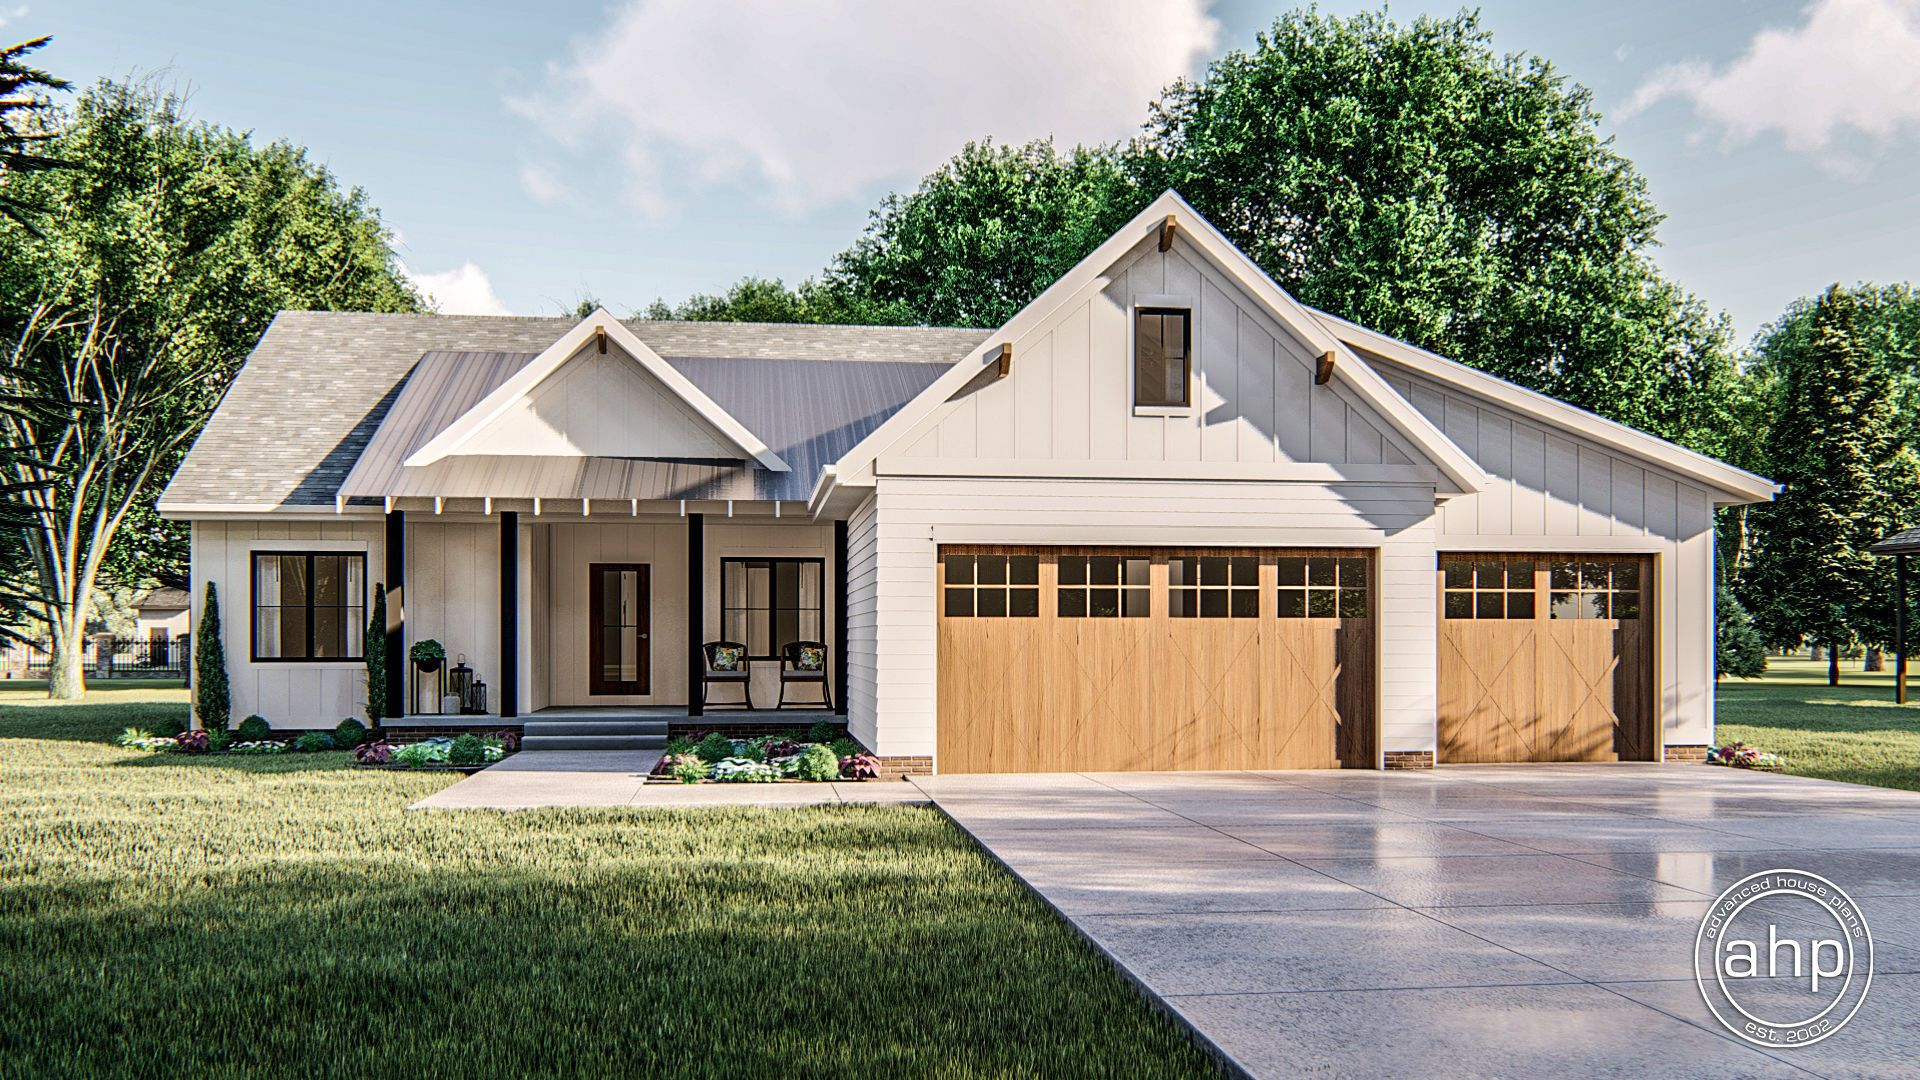 1 Story Modern Farmhouse Plan Meadow View In 2020 Modern Farmhouse Plans Modern Farmhouse Exterior Farmhouse Plans